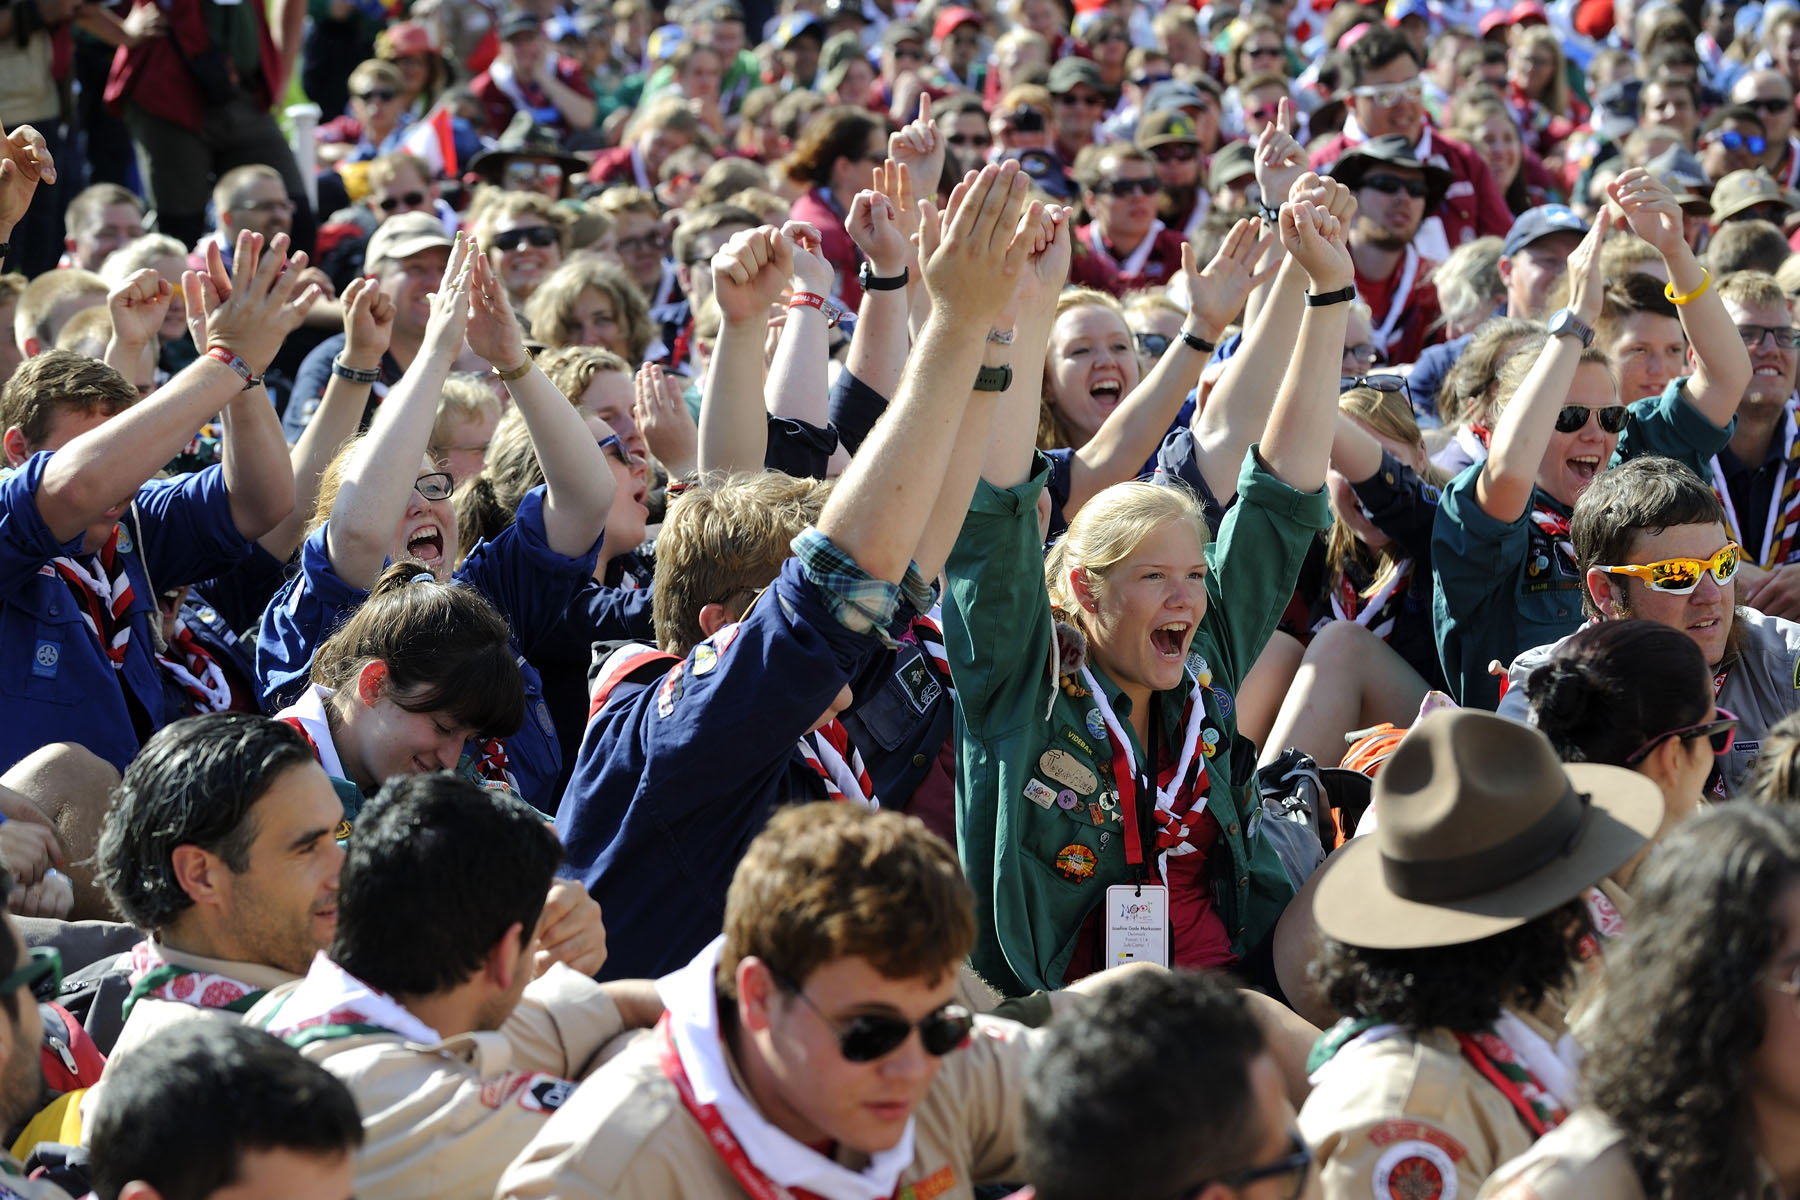 More than 2 000 scouts representing 80 countries attended the event.